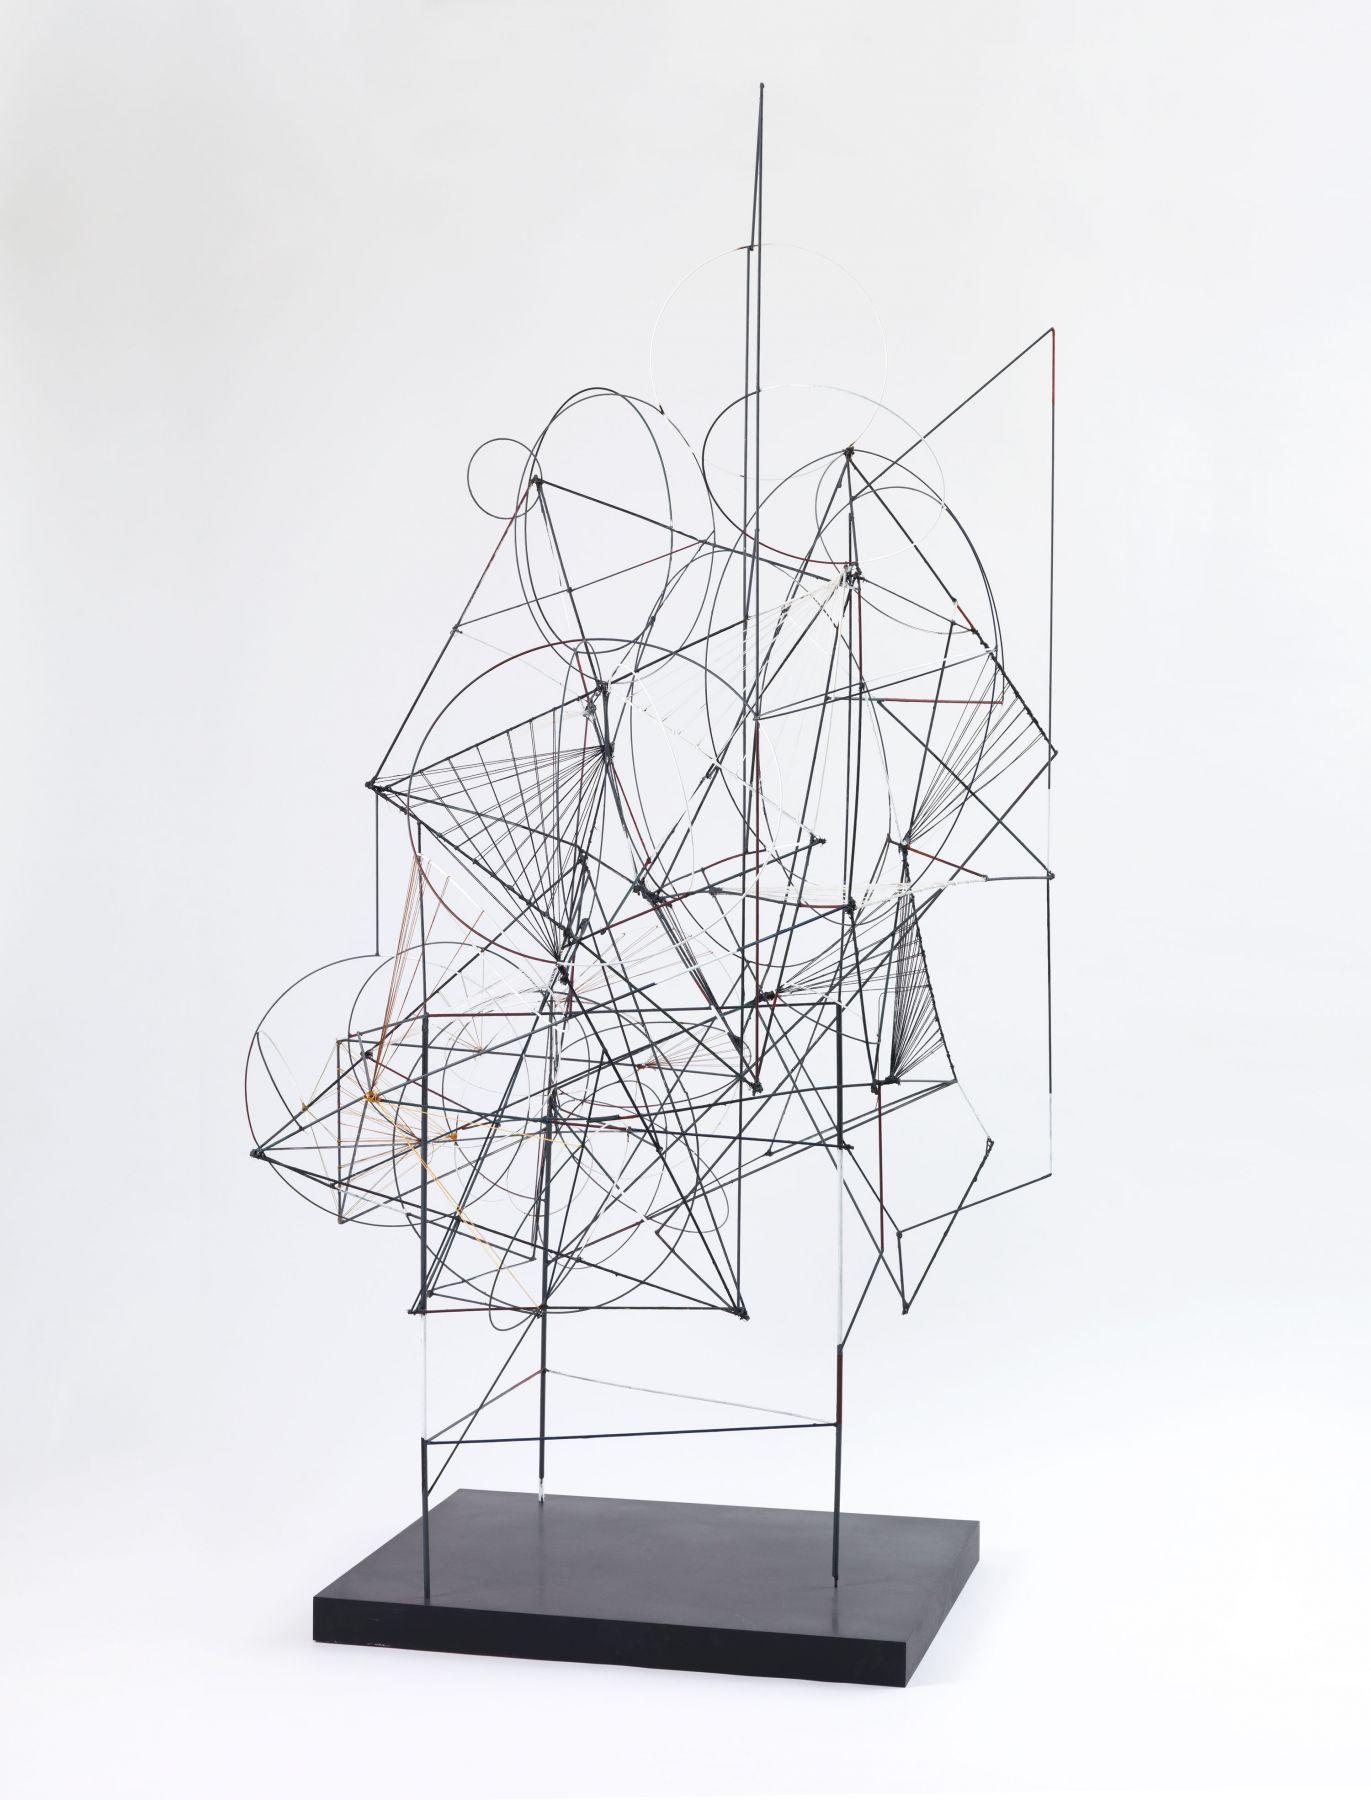 a wire sculpture by the contemporary artist Matthias Bitzer